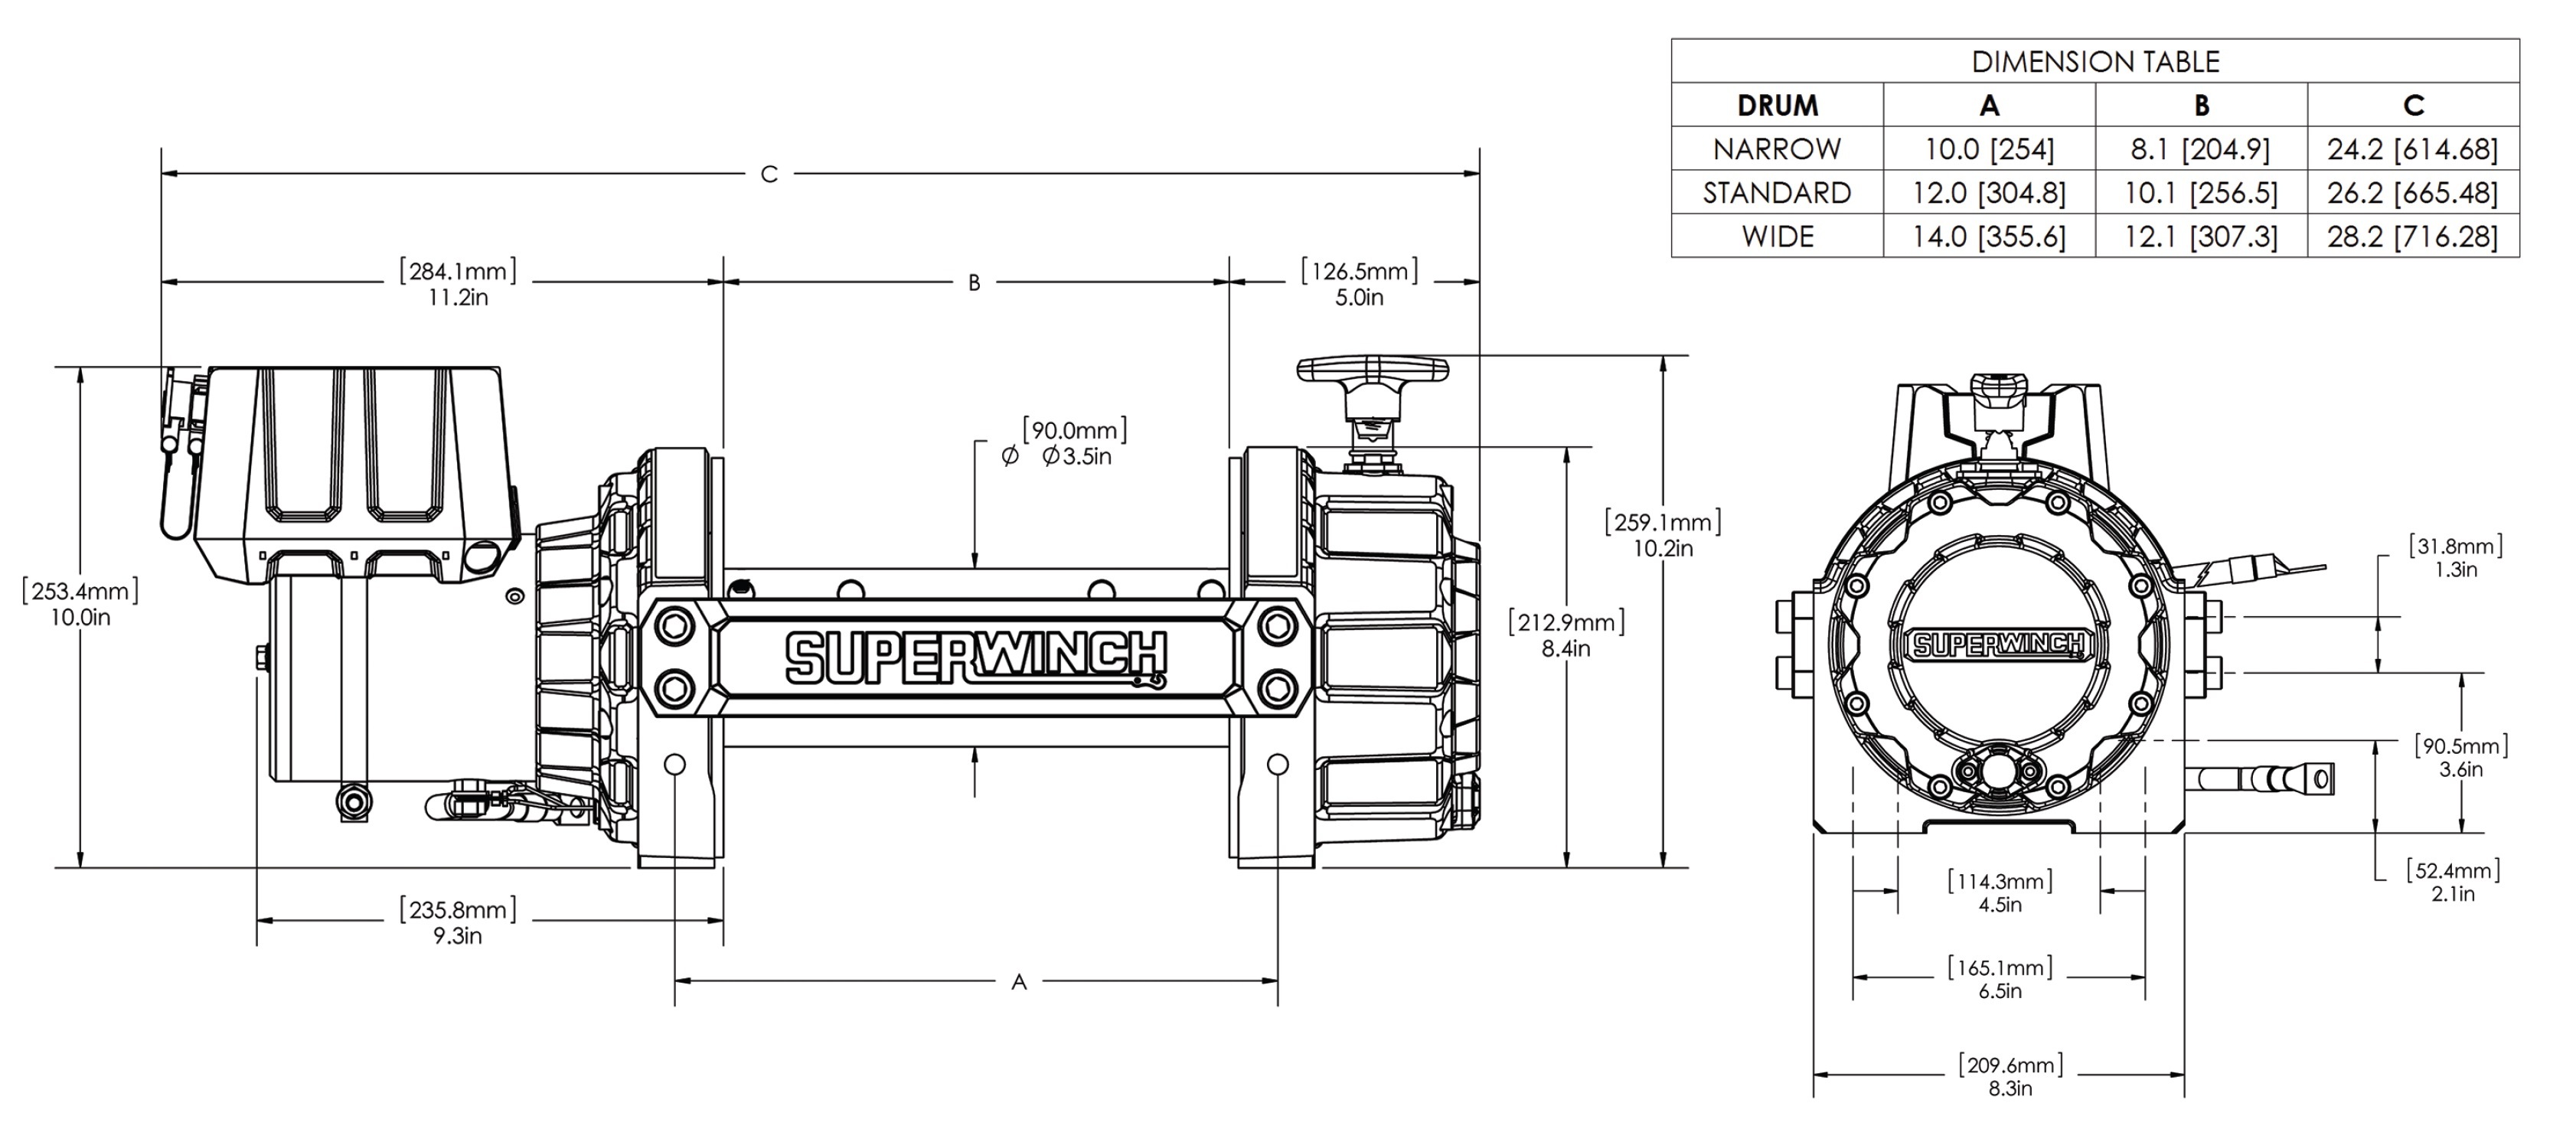 Rope Lighting 12 Volt Dc | Wiring Diagram Database on superwinch motor, superwinch t1500, superwinch amazon, superwinch terra 35, superwinch circuit breaker, superwinch braking system, superwinch control, superwinch winch trailer, superwinch x3,